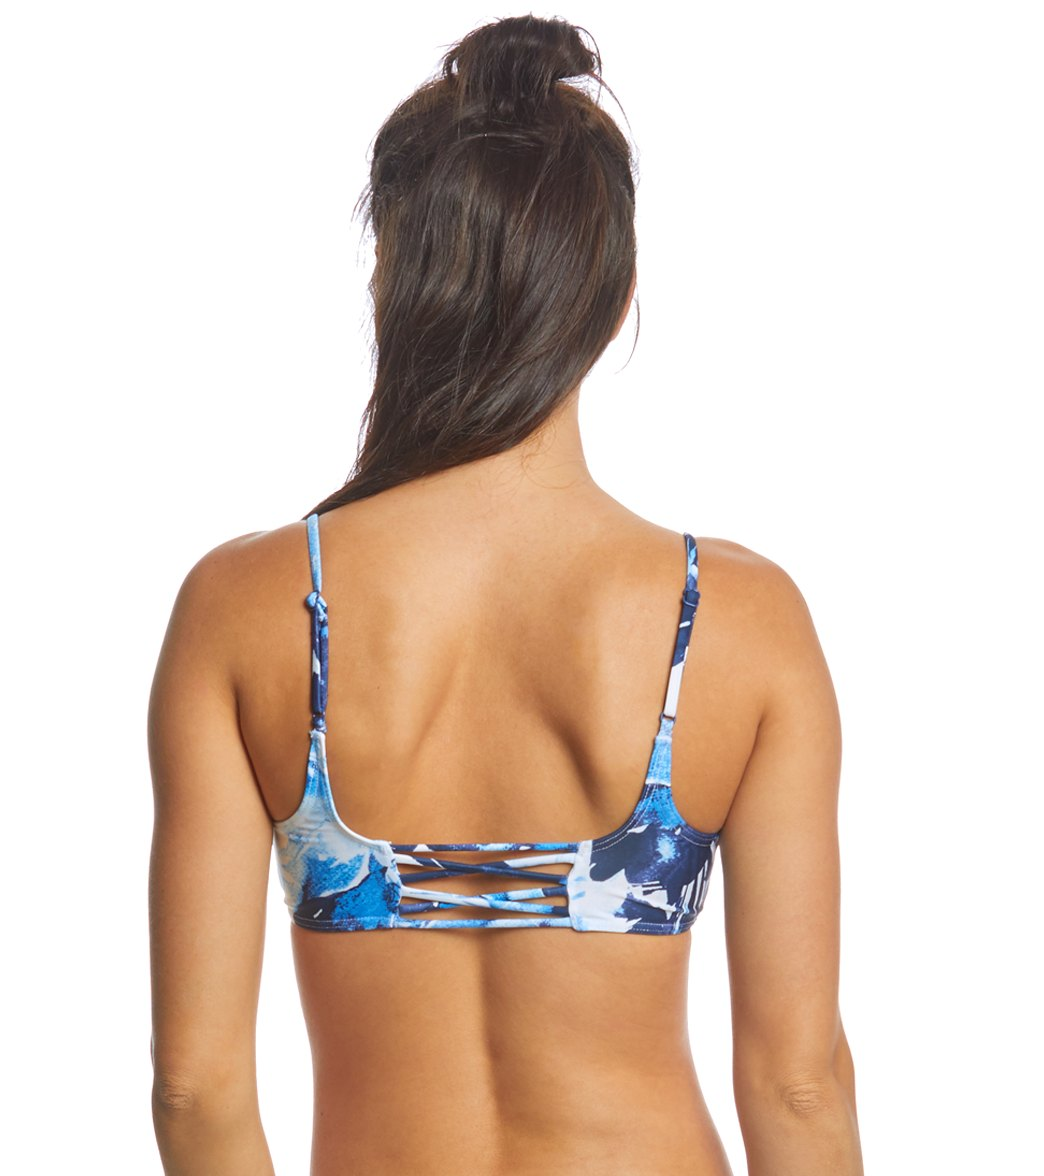 722742c948 RVCA Women s Paint Flower Bralette Bikini Top at SwimOutlet.com